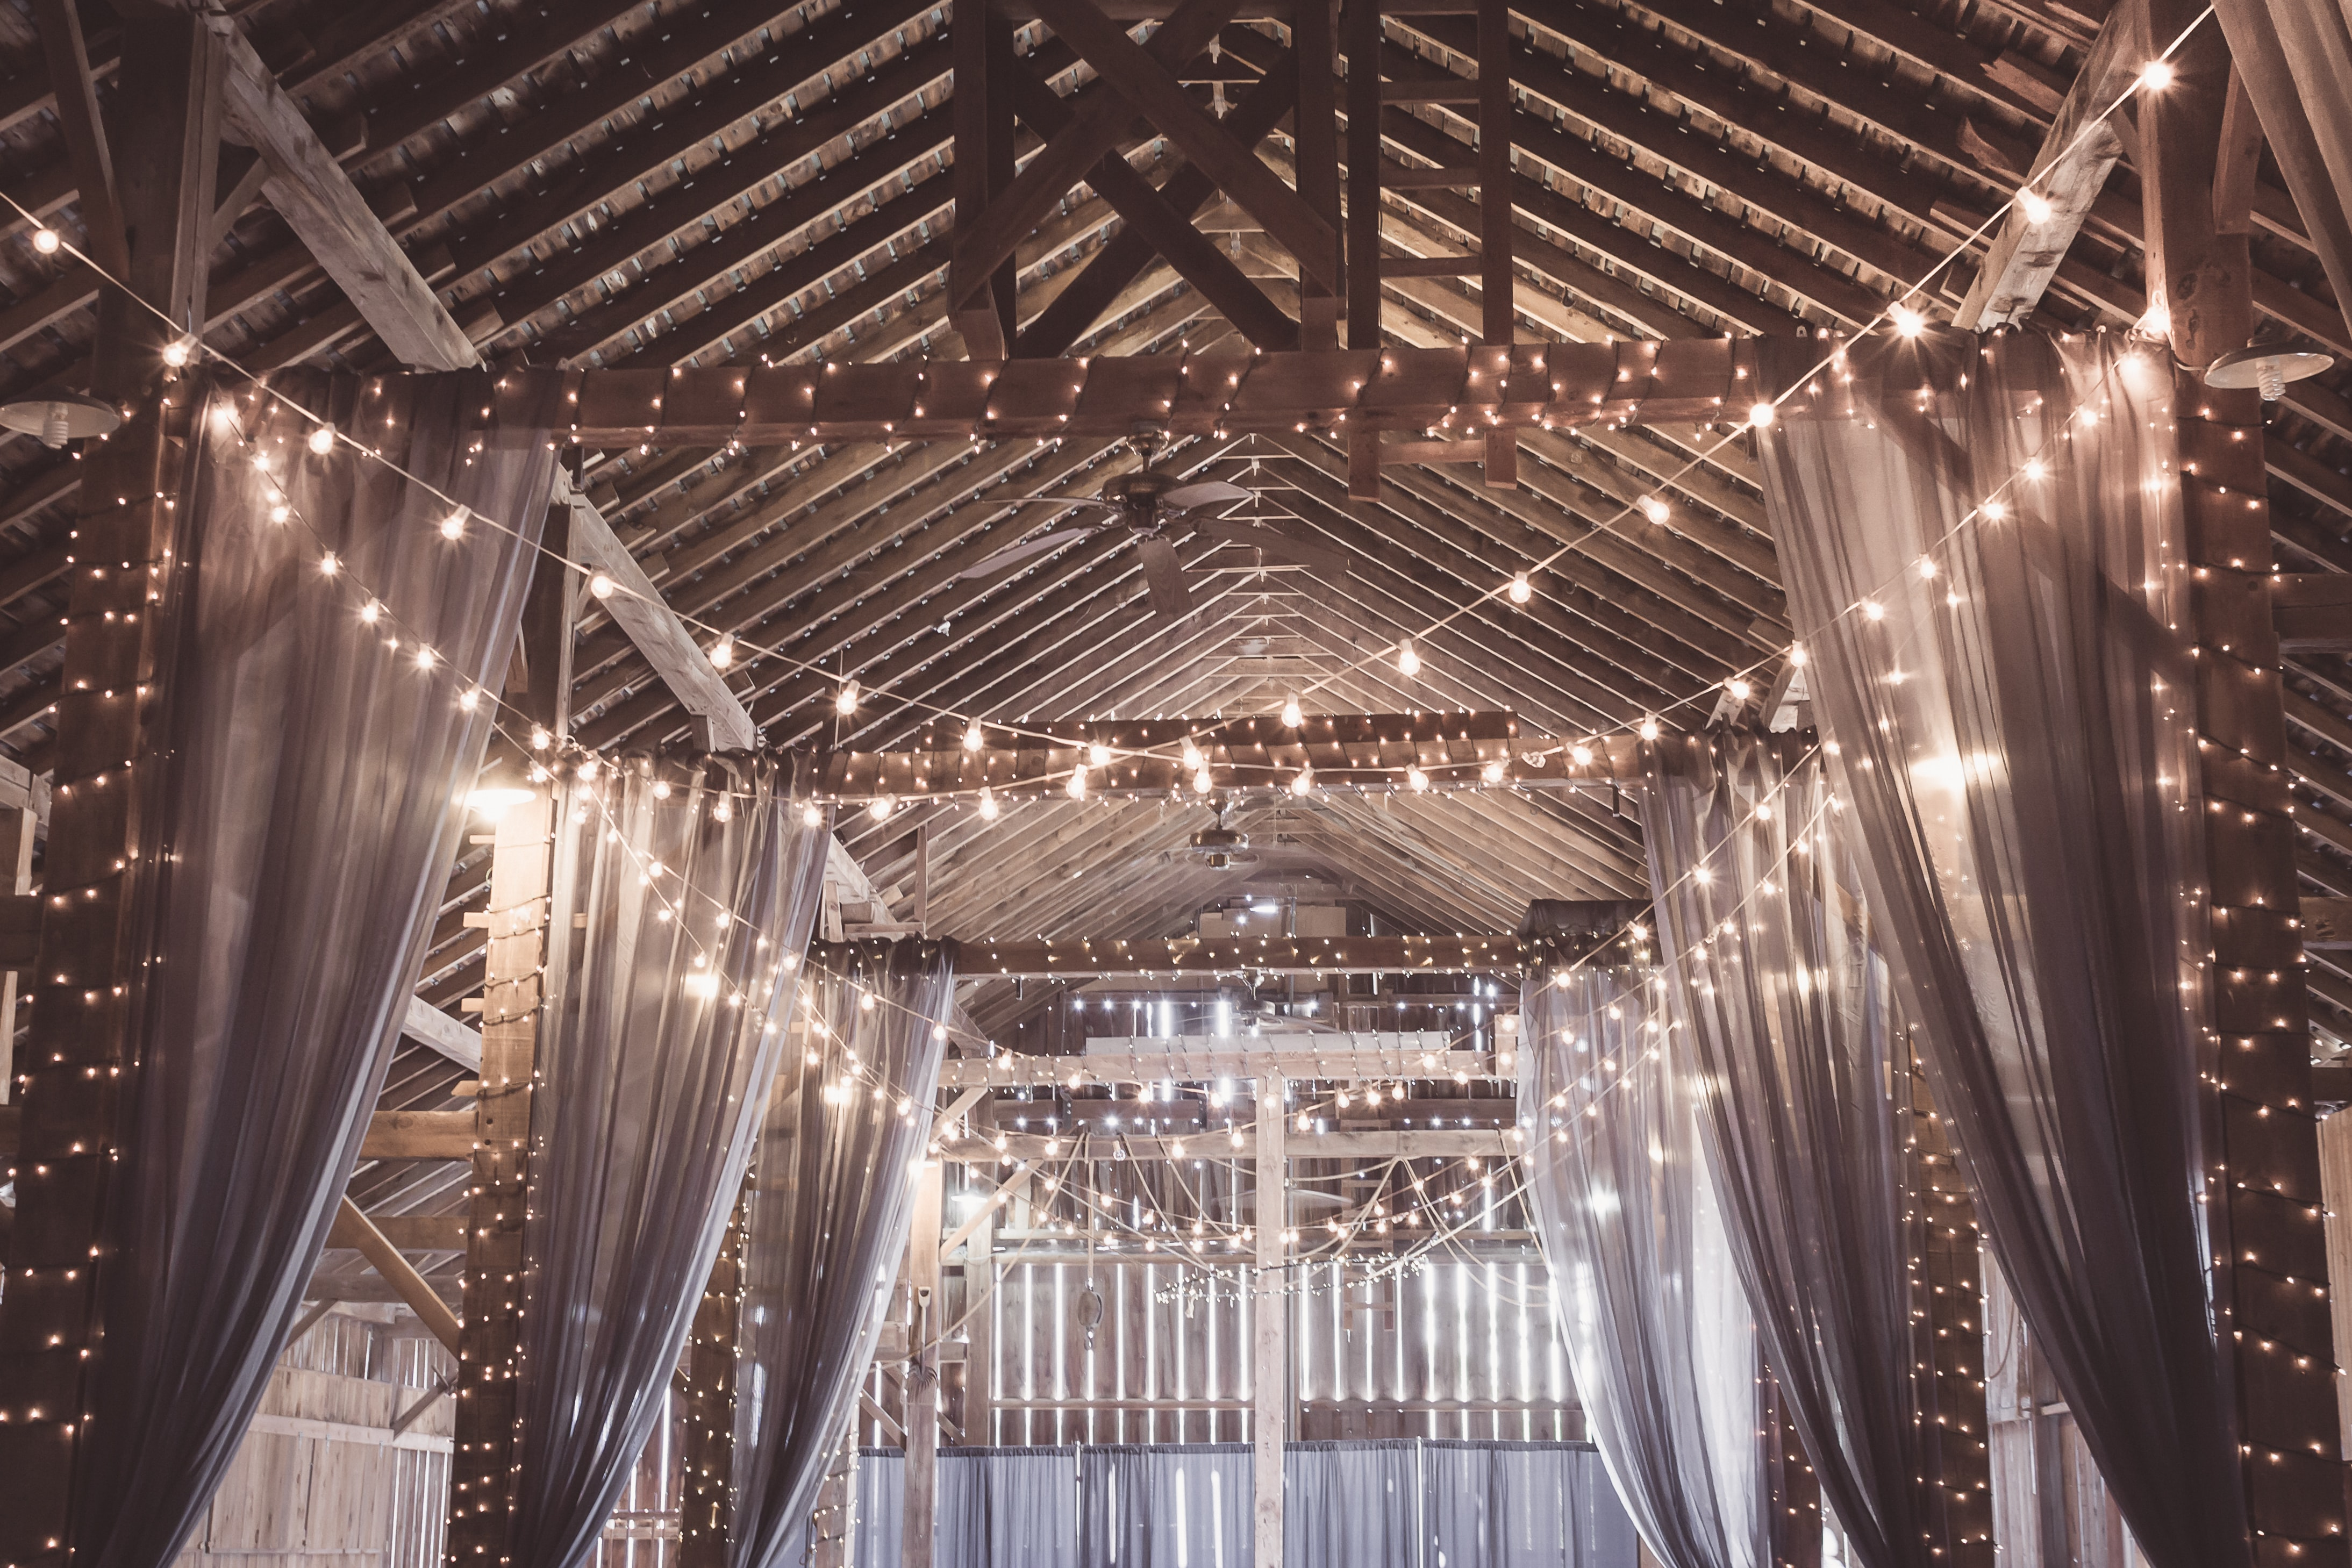 trends for weddings in 2021 - a bunch of string lights inside a venue